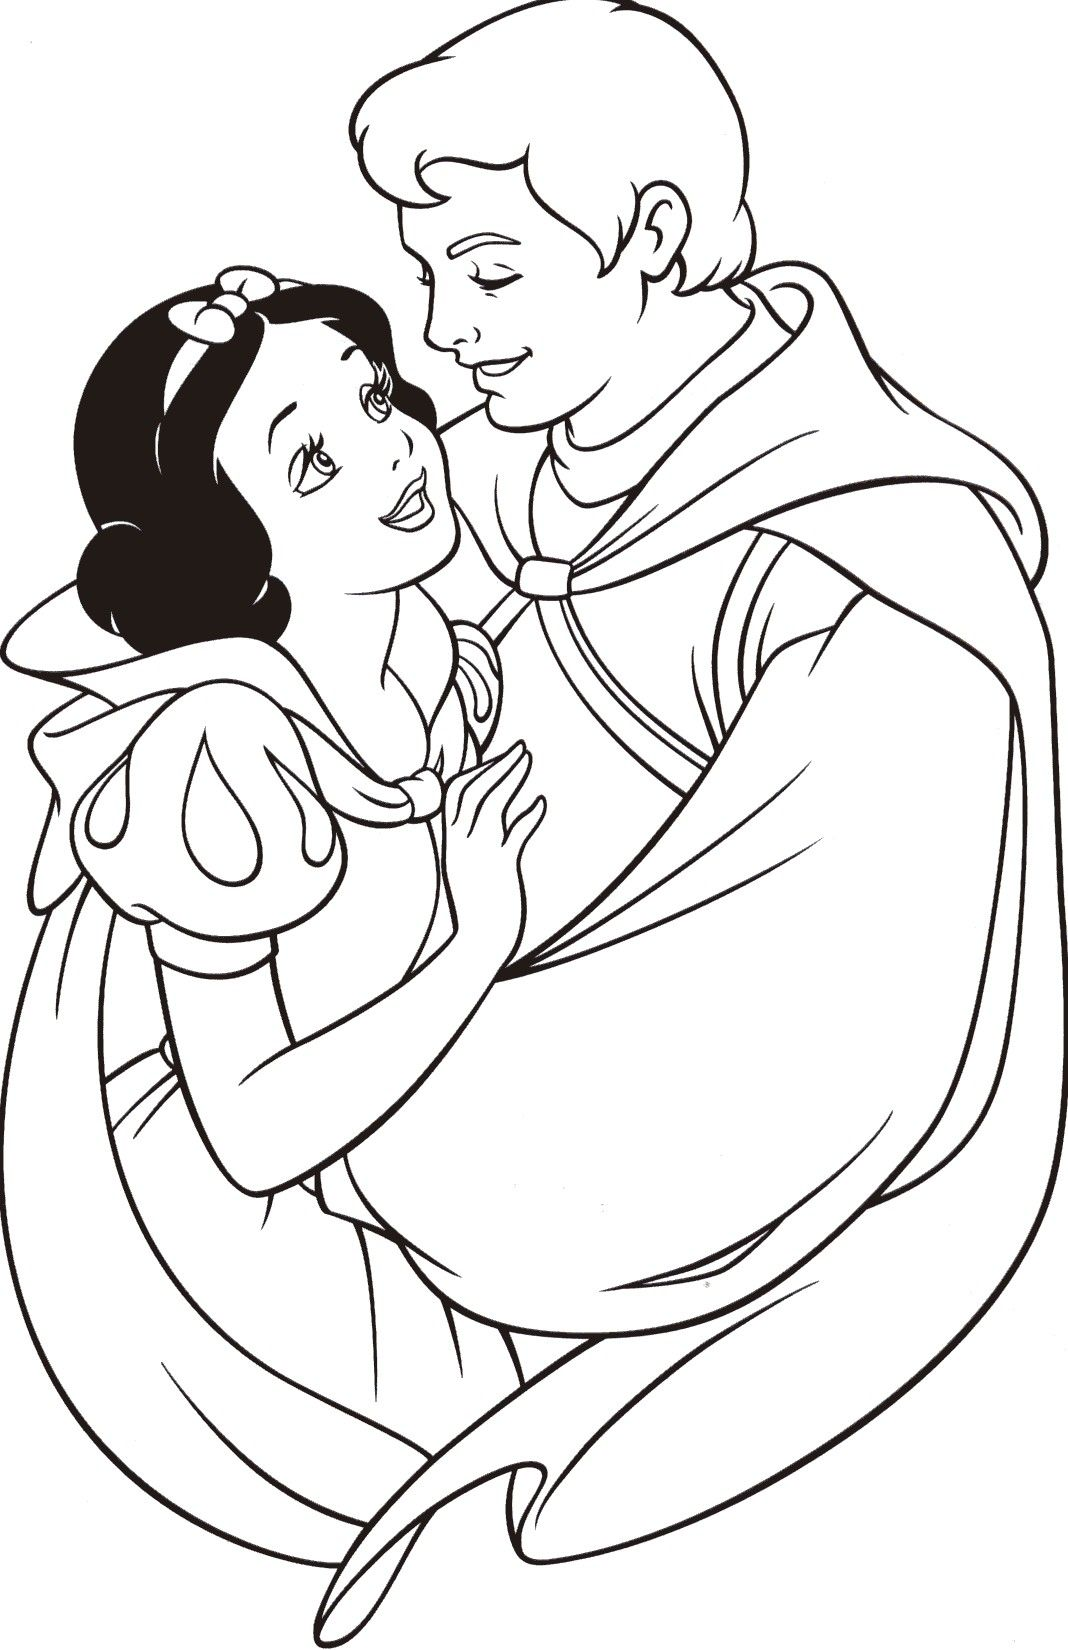 Snow & Prince Charming | Coloring Pages | Pinterest | Schneewittchen ...